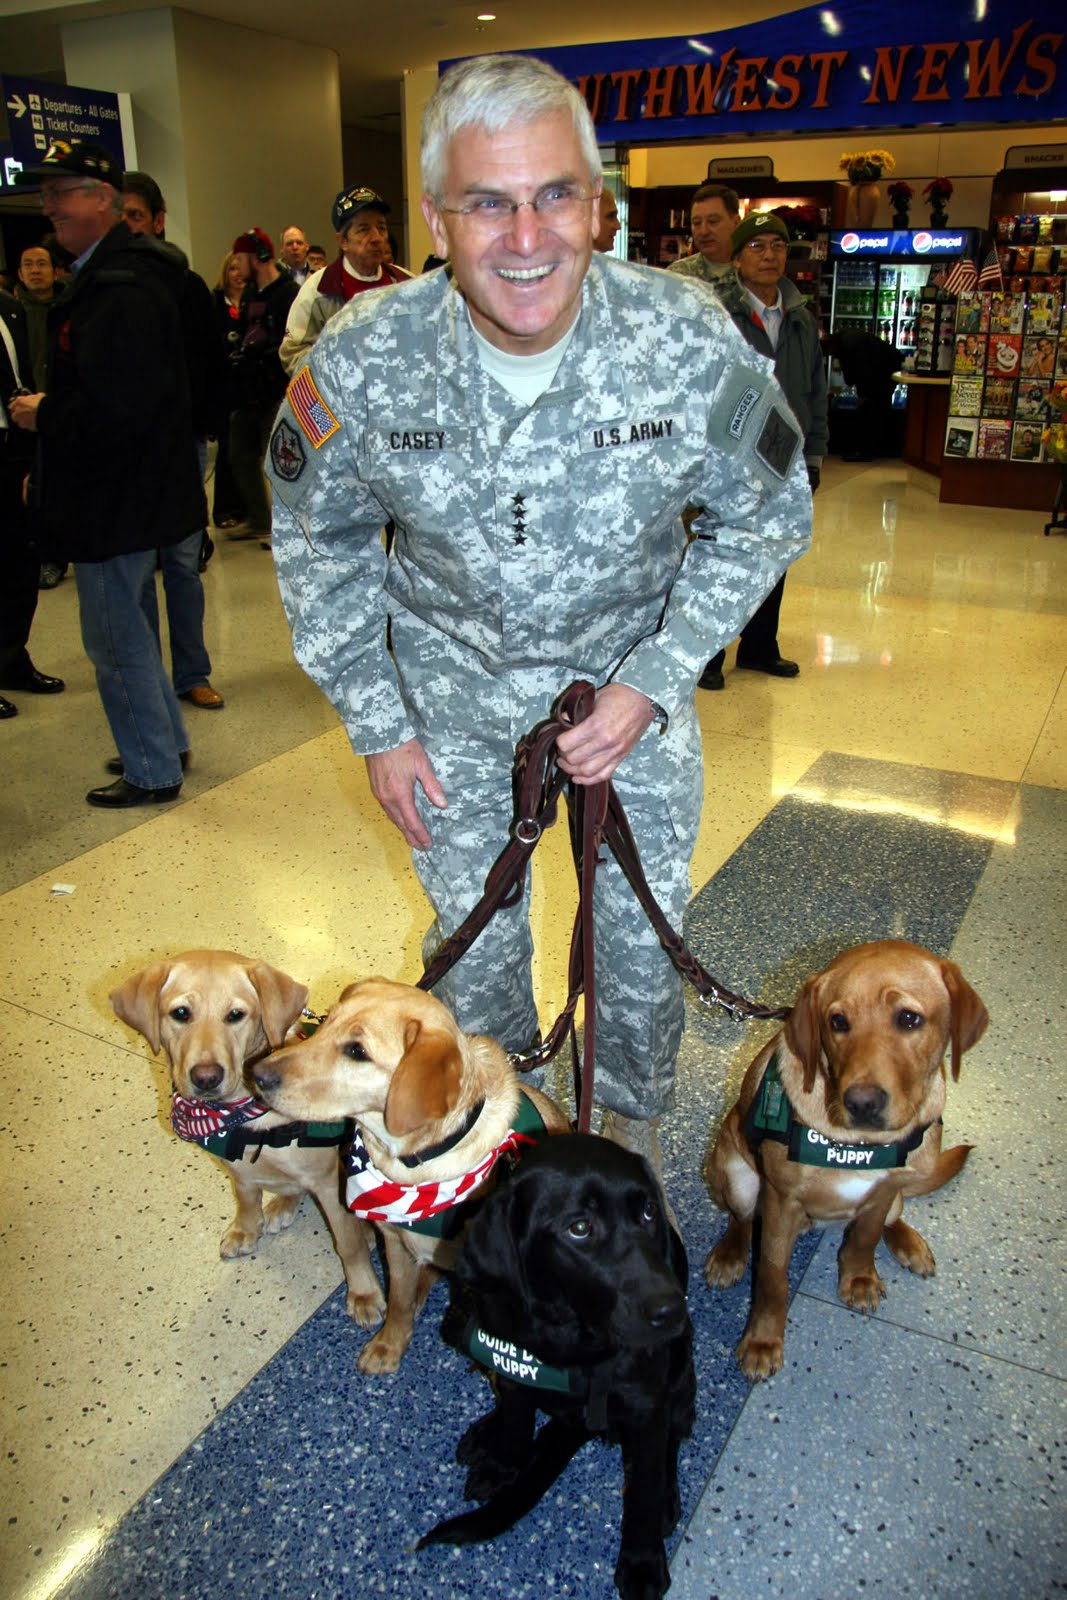 No Bones About It Guide Dogs For The Blinds Blog Great Day In Texas